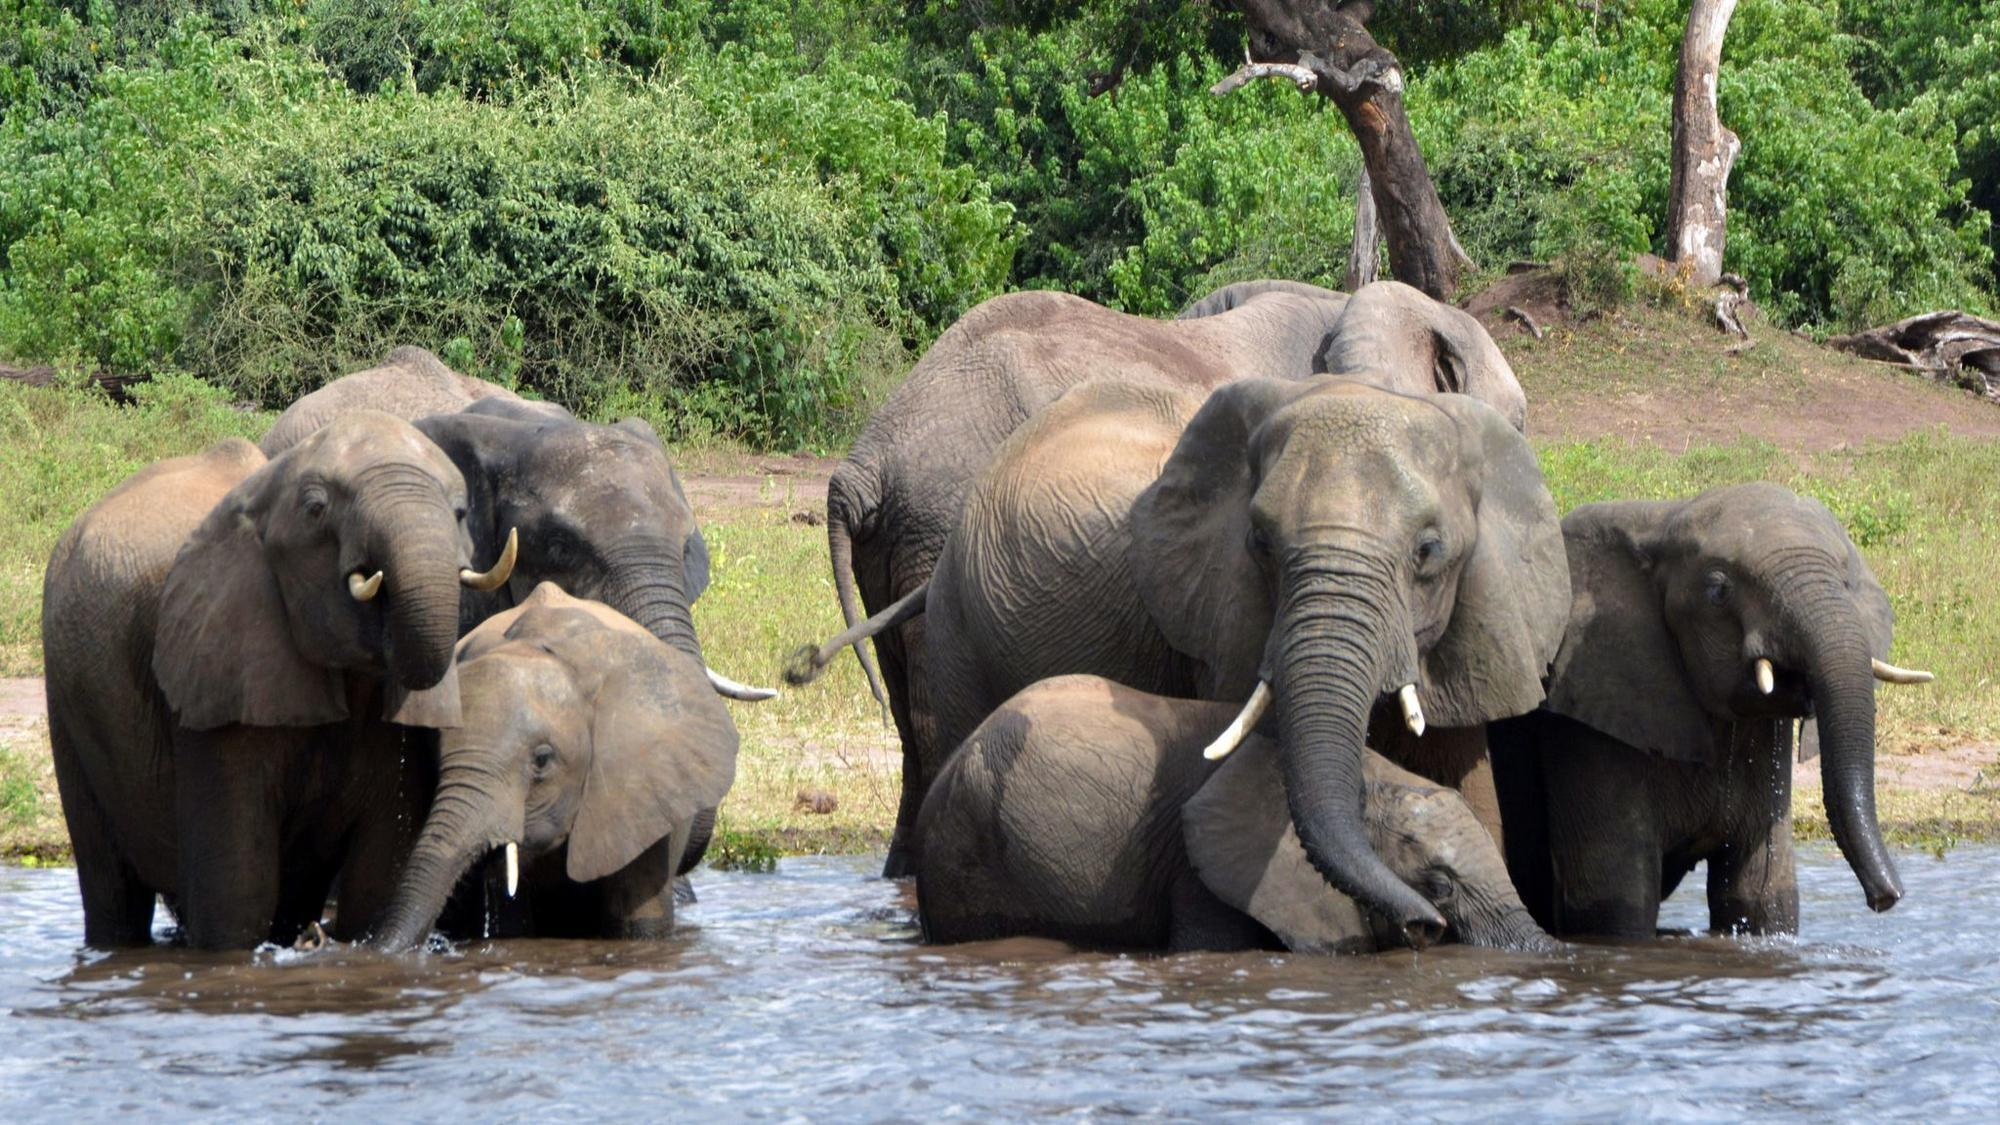 Botswana lifts ban on elephant hunting, raising poaching fears